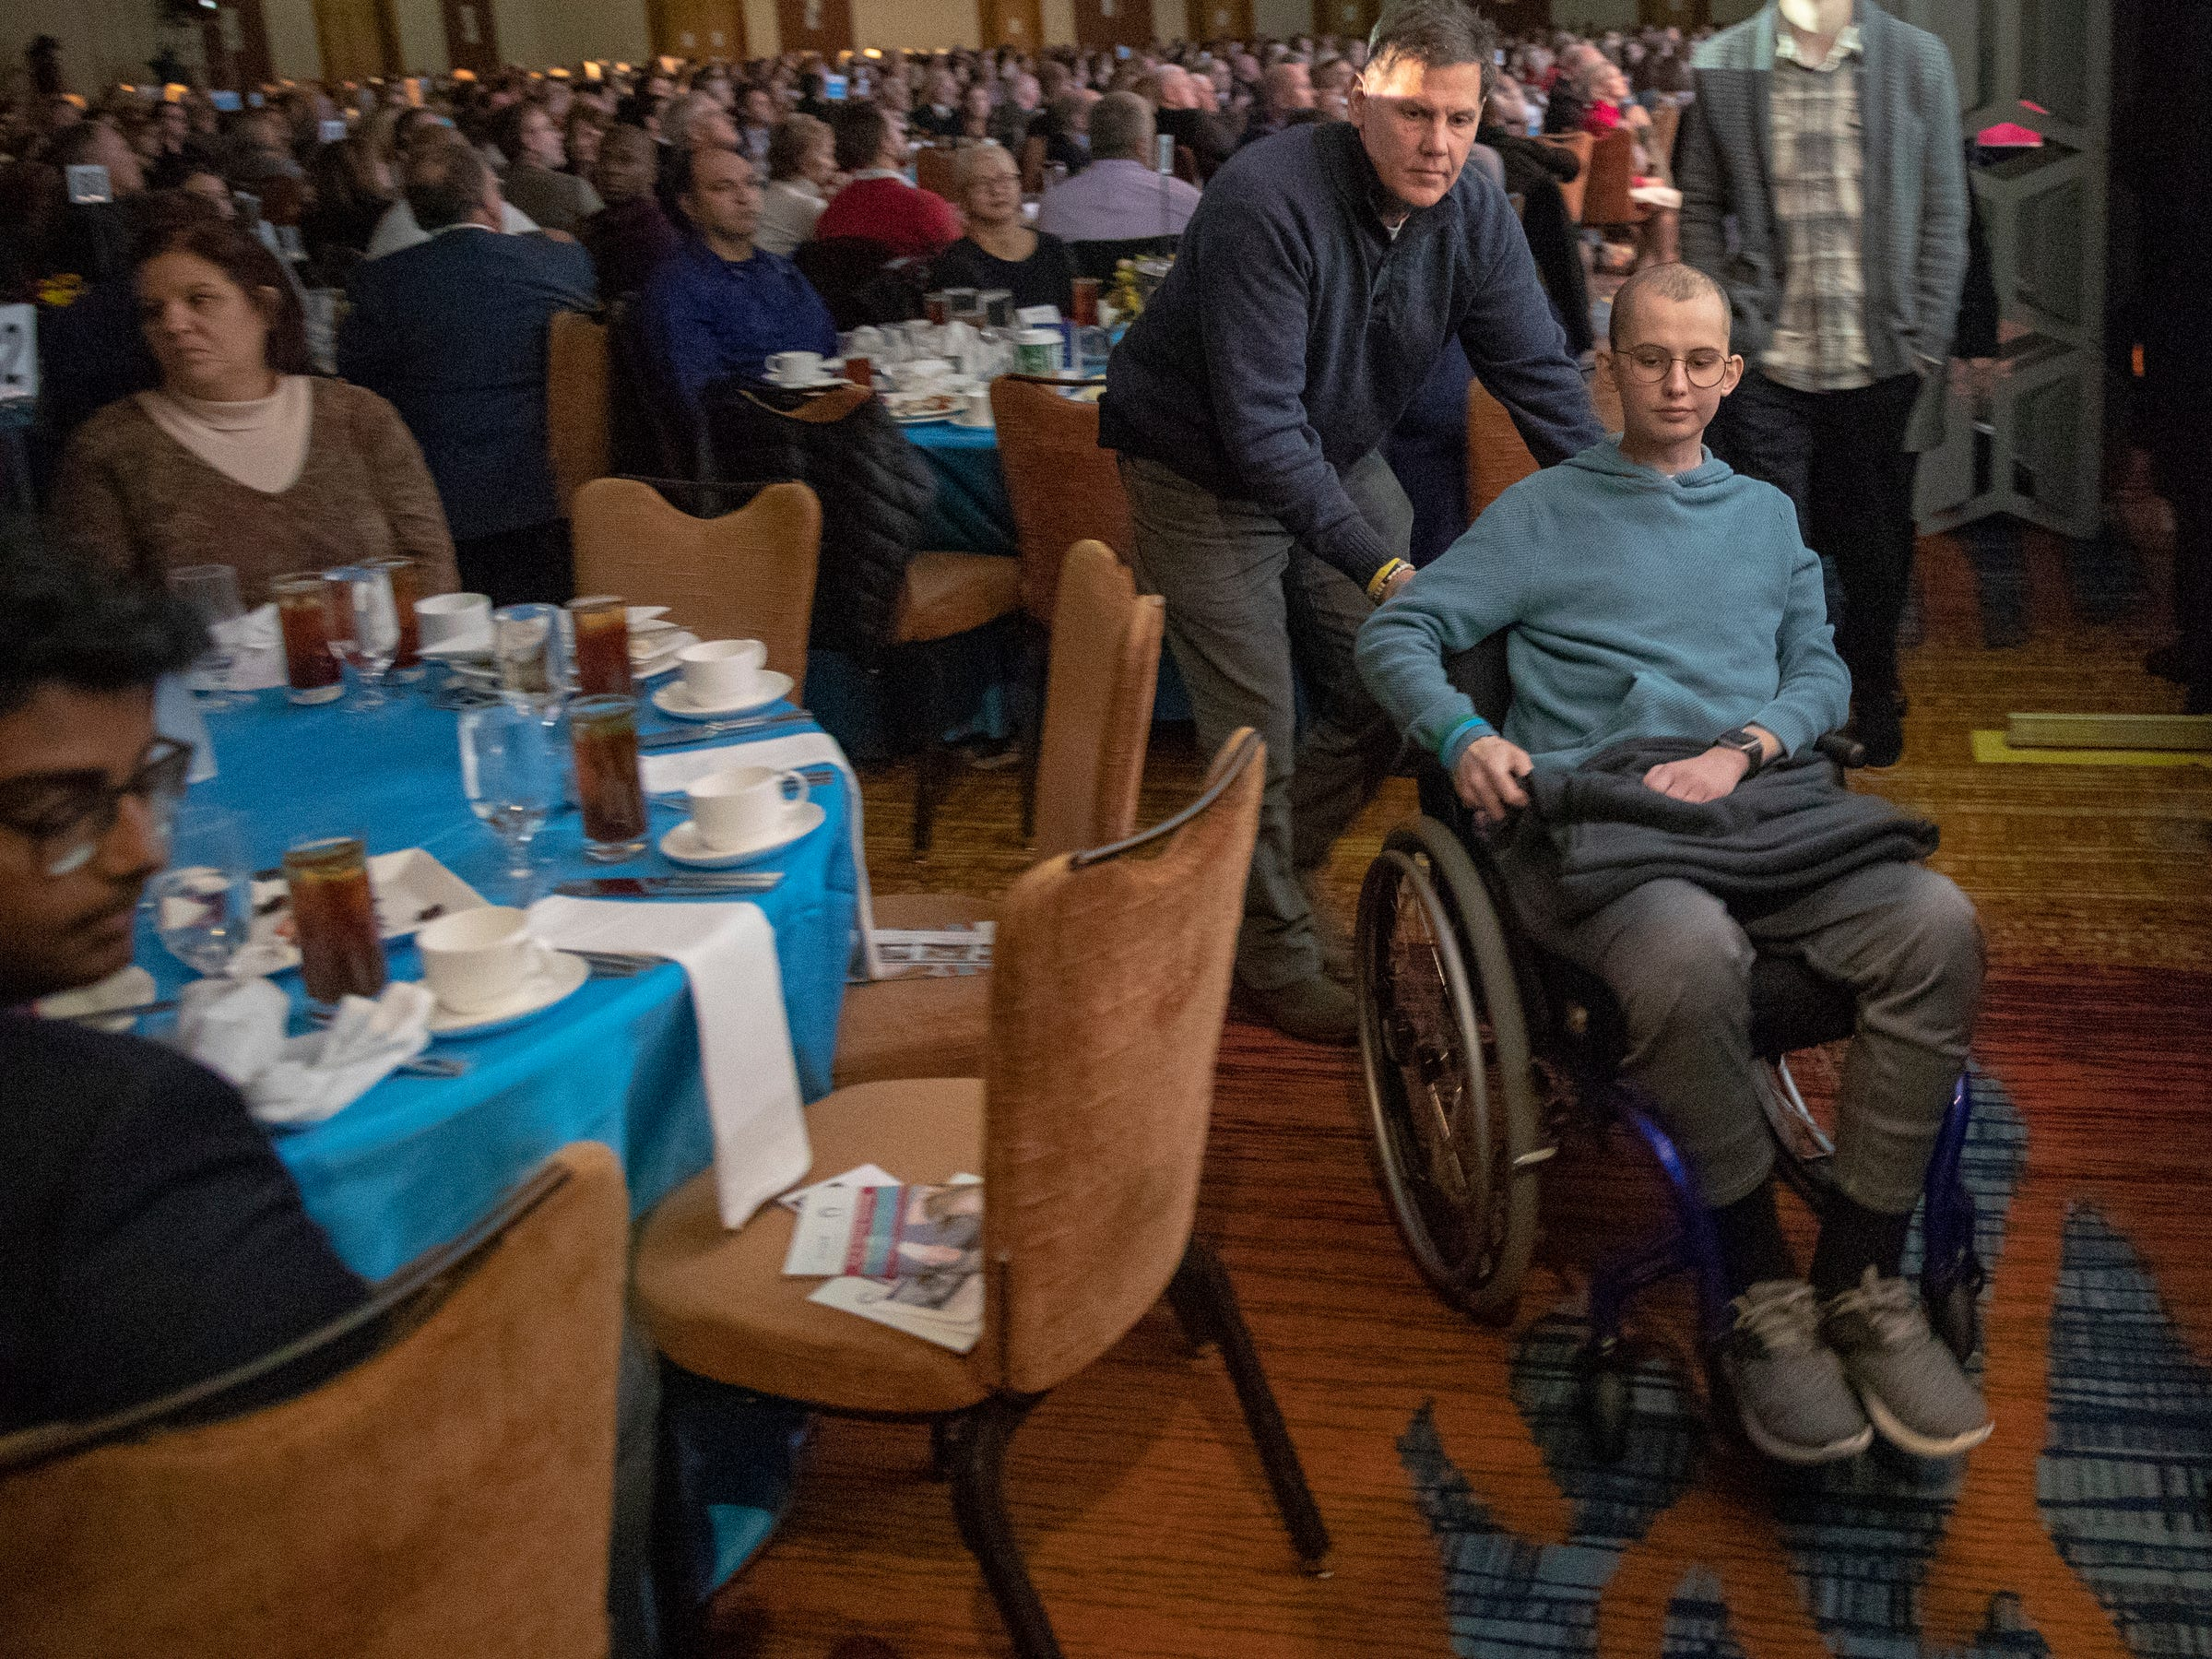 Tyler Trent is pushed by his father Tony Trent, at a fundraiser luncheon for Riley Children's Foundation's Be The Hope Now campaign, Indianapolis, Wednesday, Nov. 28, 2018. Trent, who has the rare bone cancer osteosarcoma, is in hospice care, and was given the Sagamore of the Wabash award, given to distinguished Hoosiers.